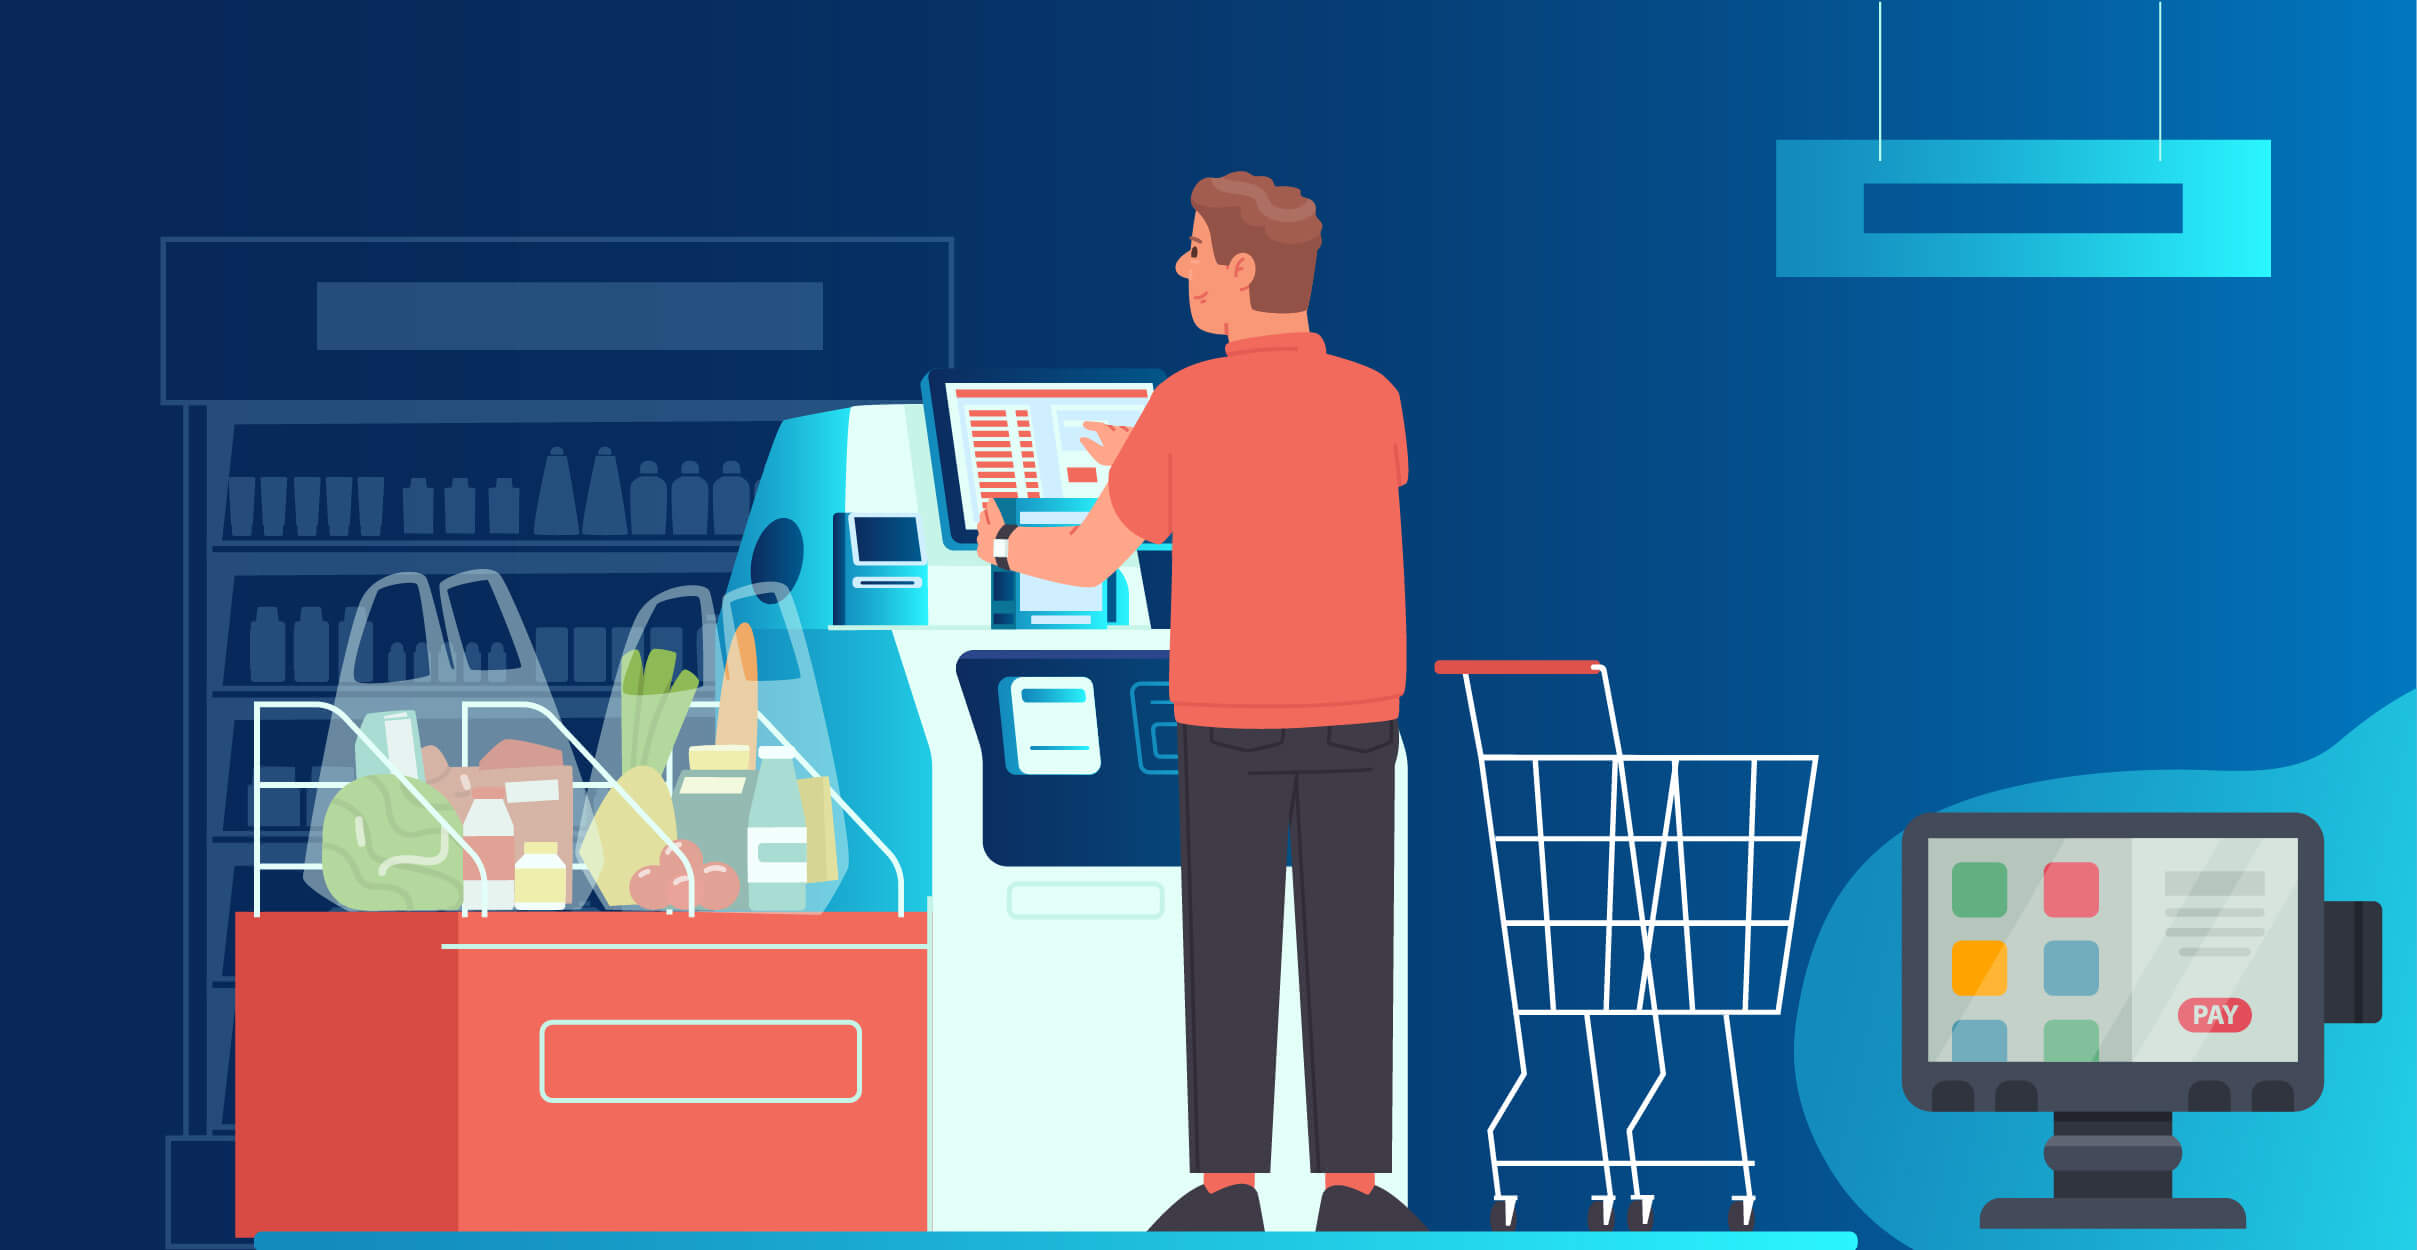 FTx retail pos software with inventory